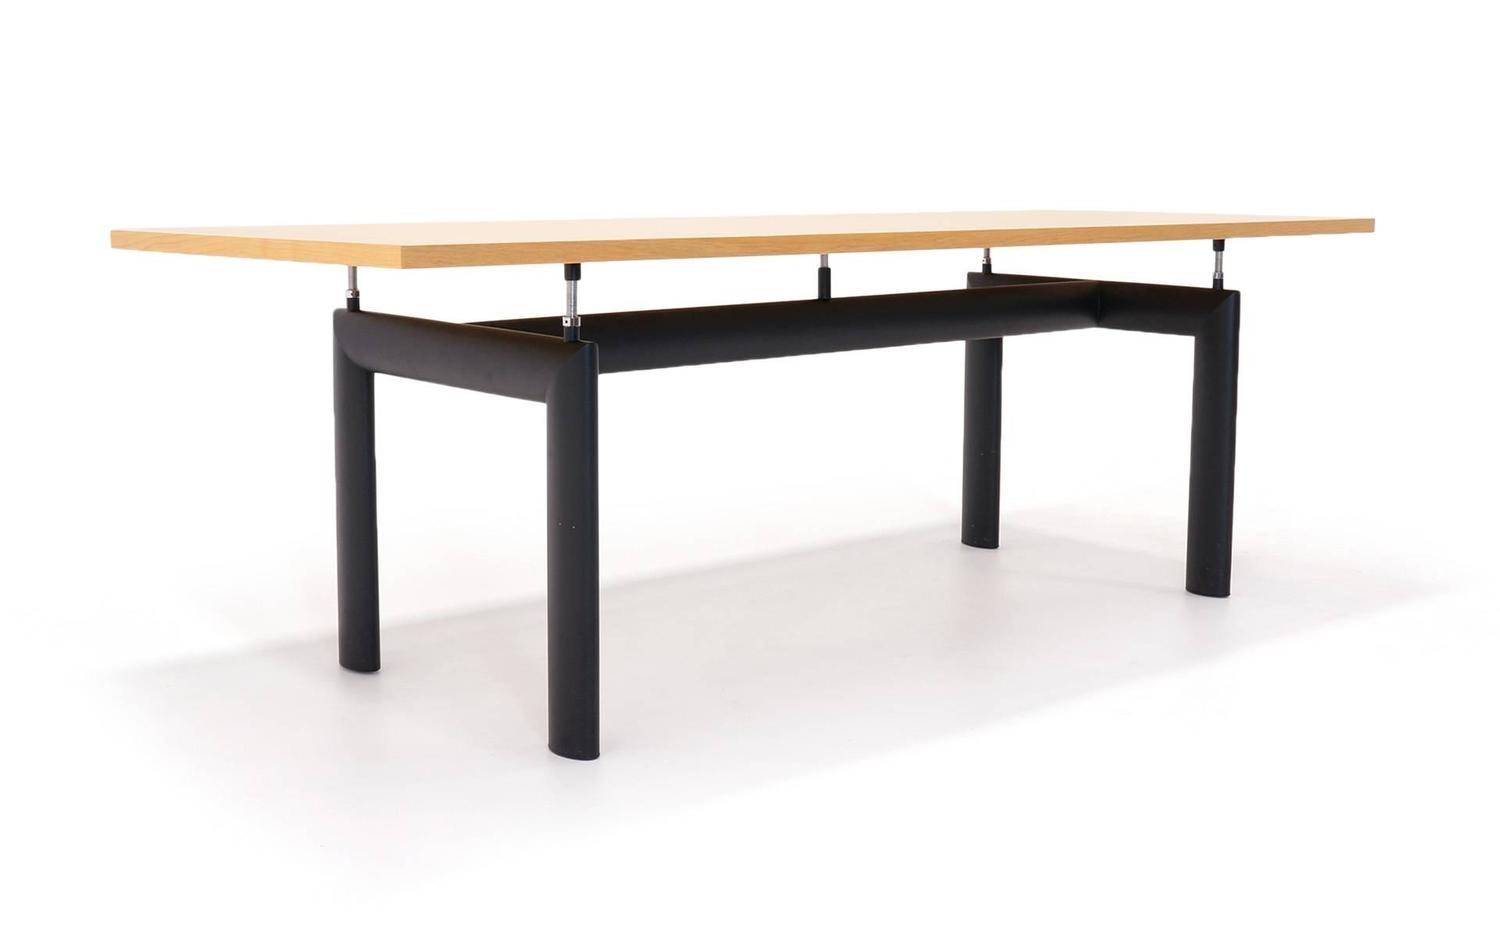 Le corbusier for cassina lc6 dining or conference table at - Table le corbusier lc6 ...